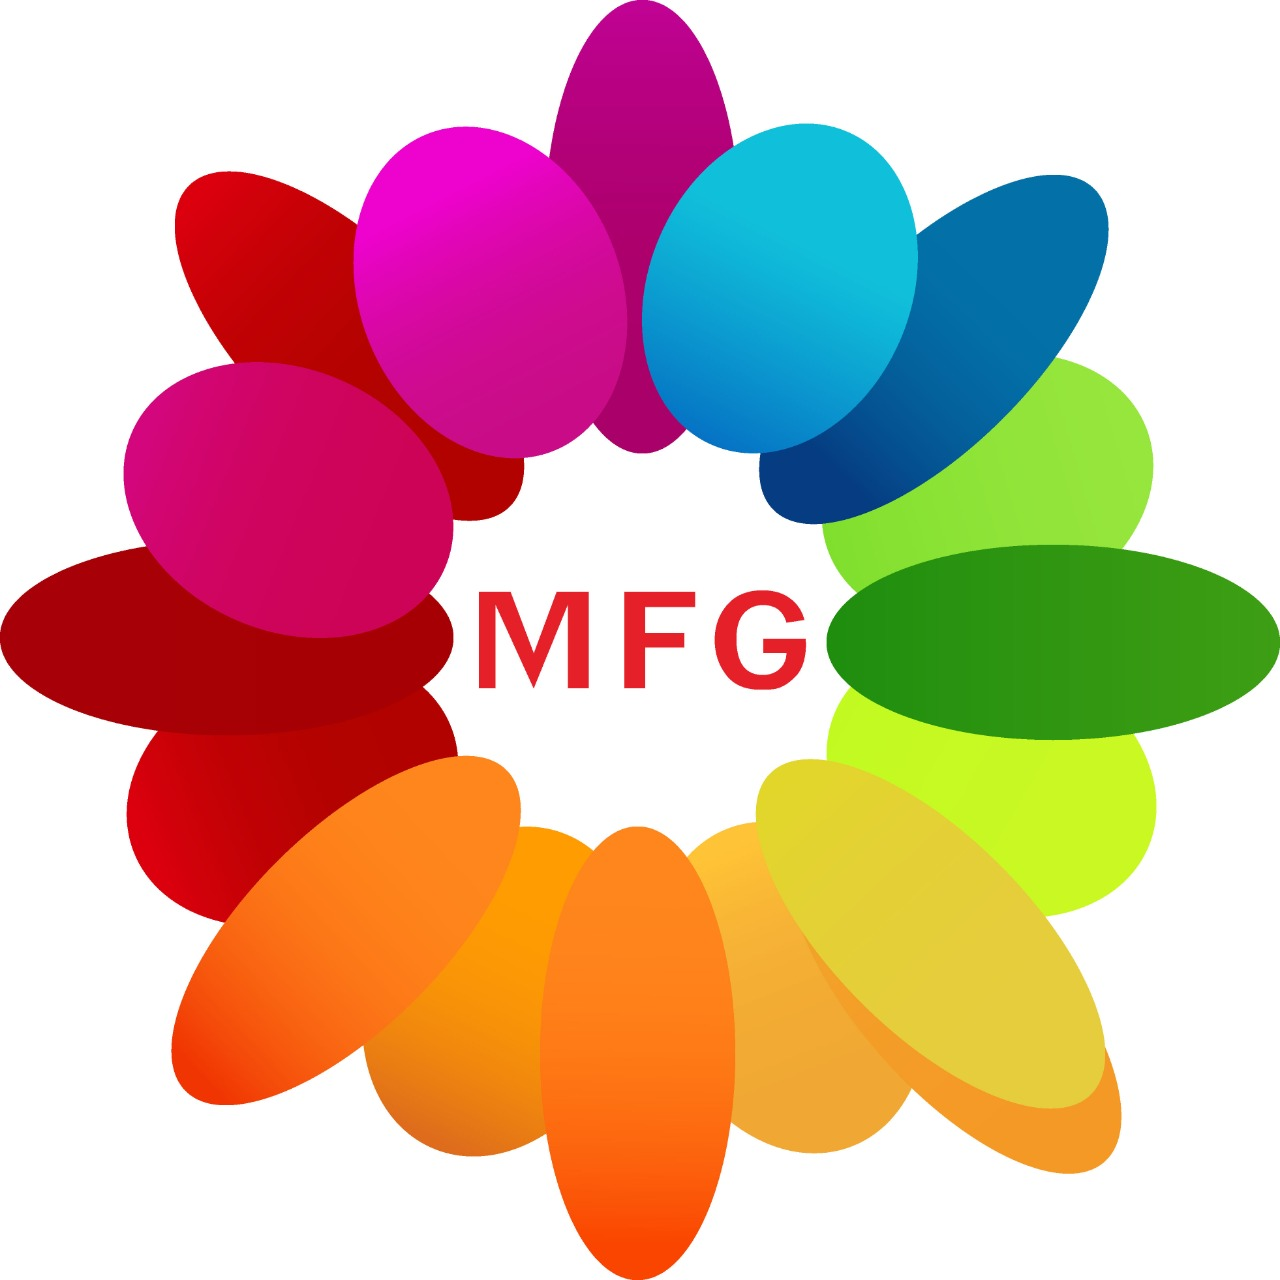 Bunch of 20 pink roses with box of 24 pcs rocher ferrero chocolates